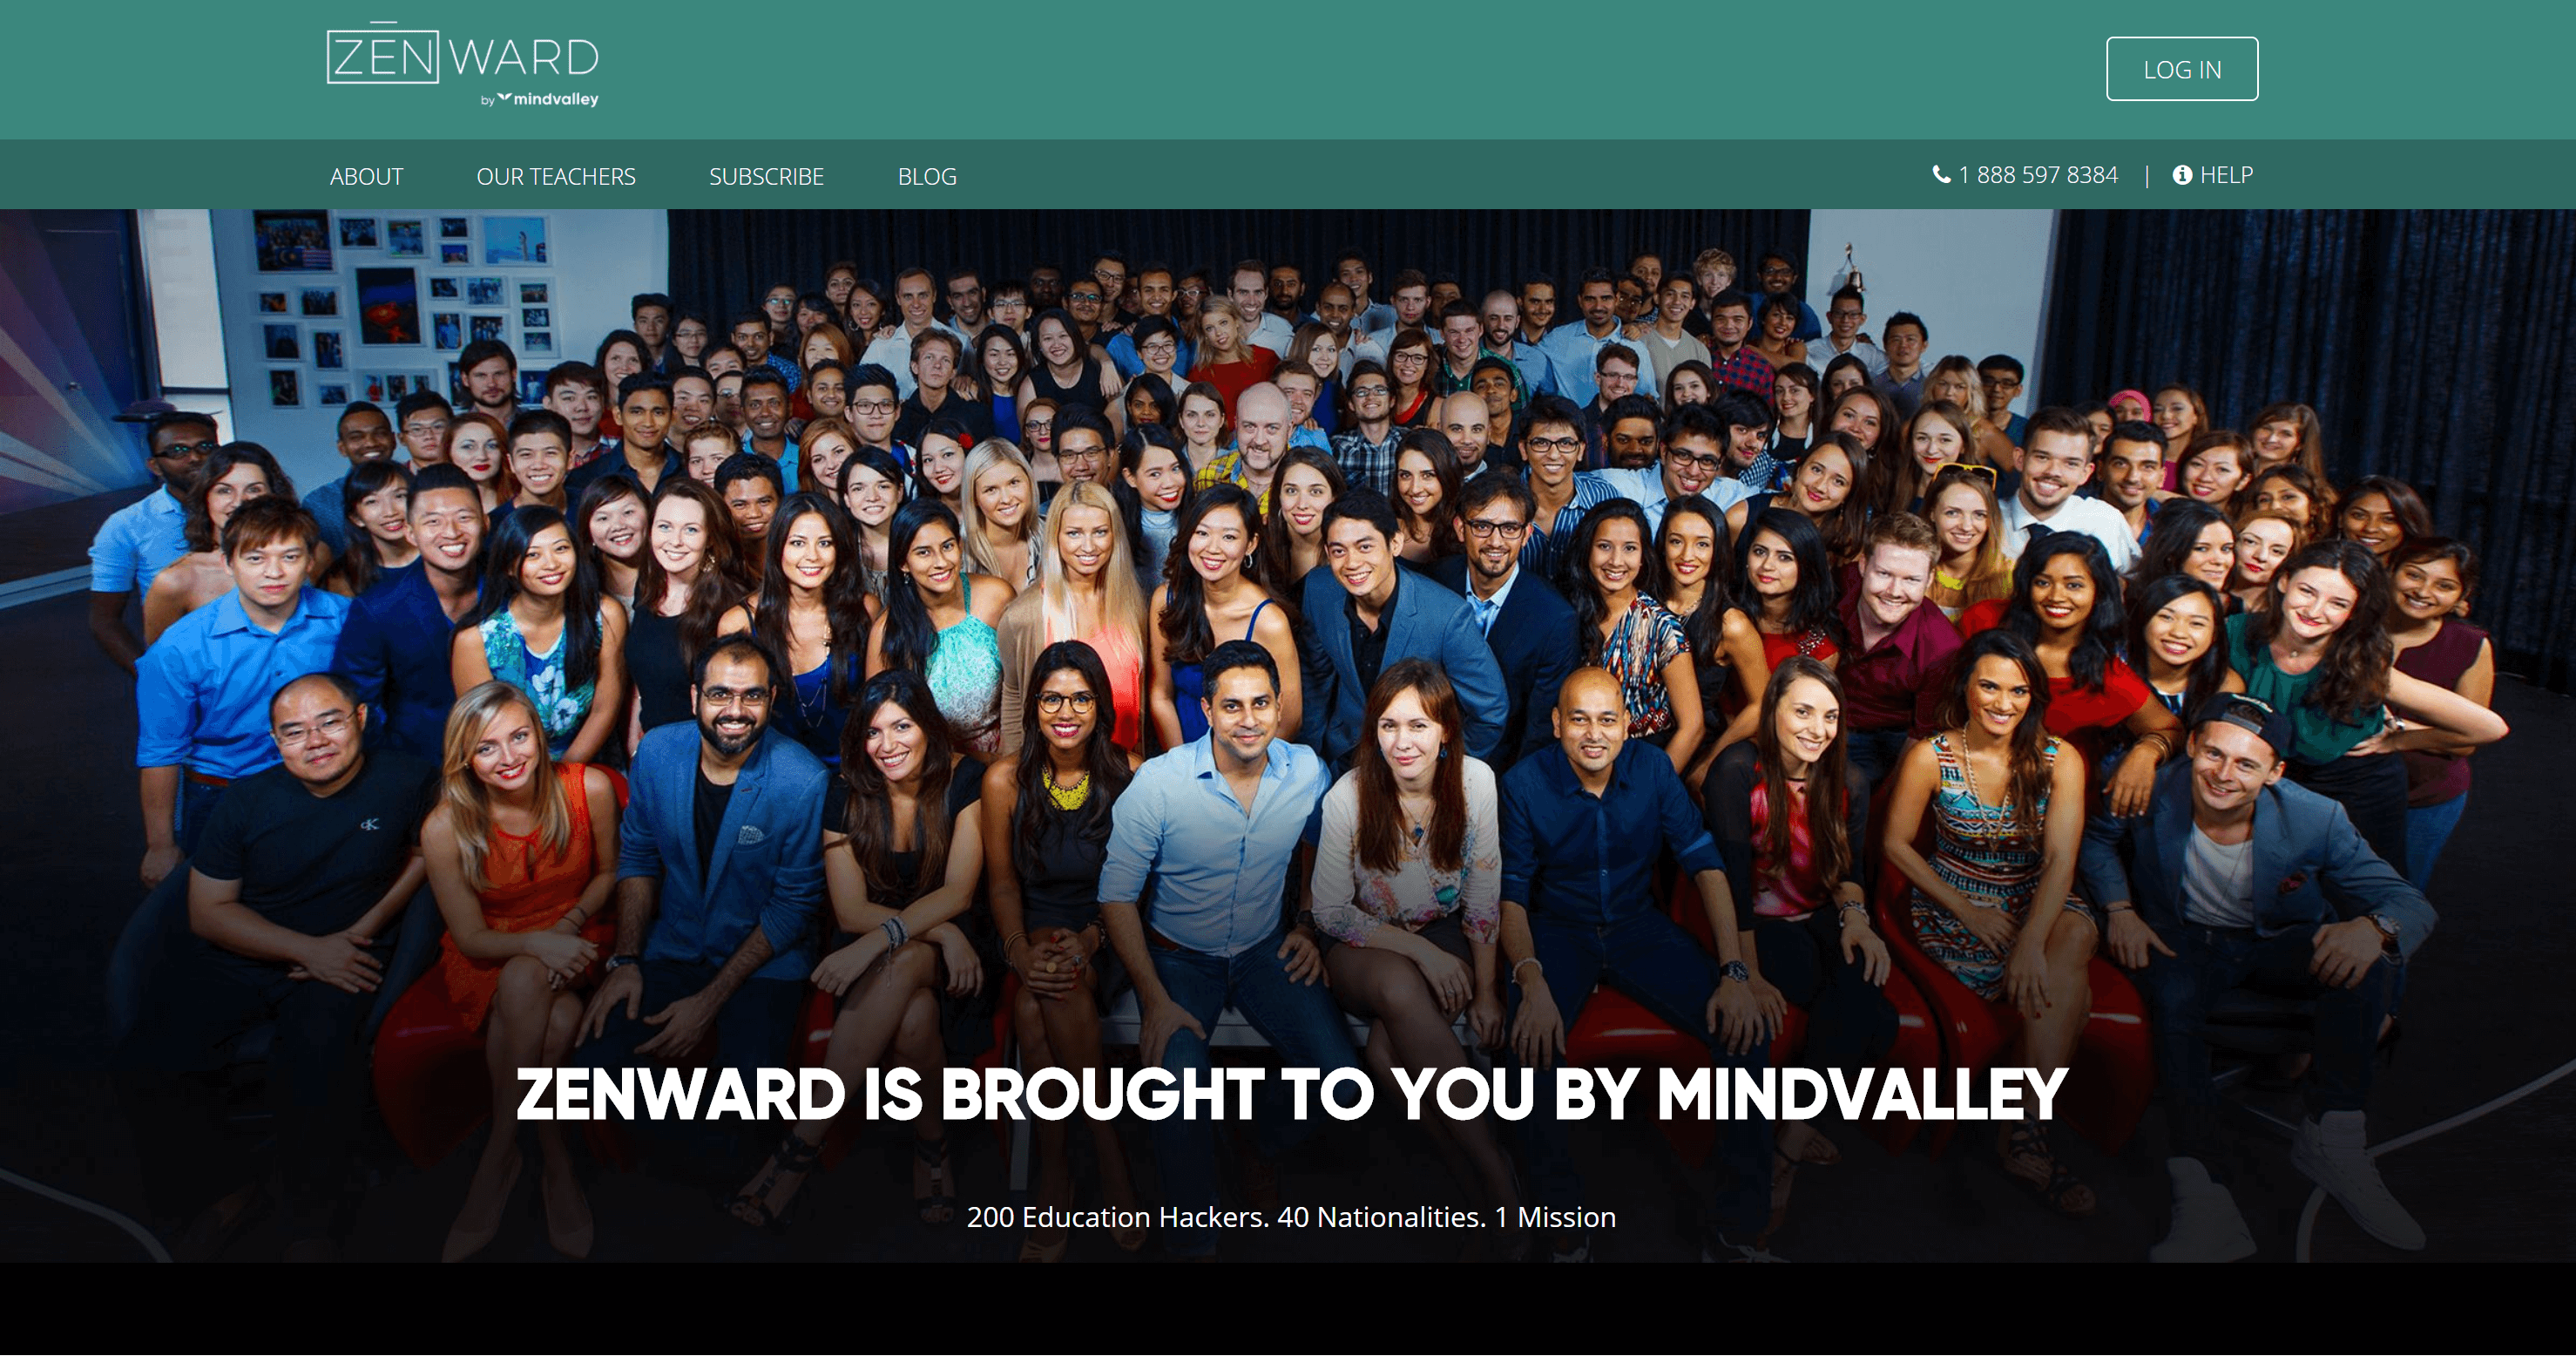 Zenward - Mindvalley Yoga App Review